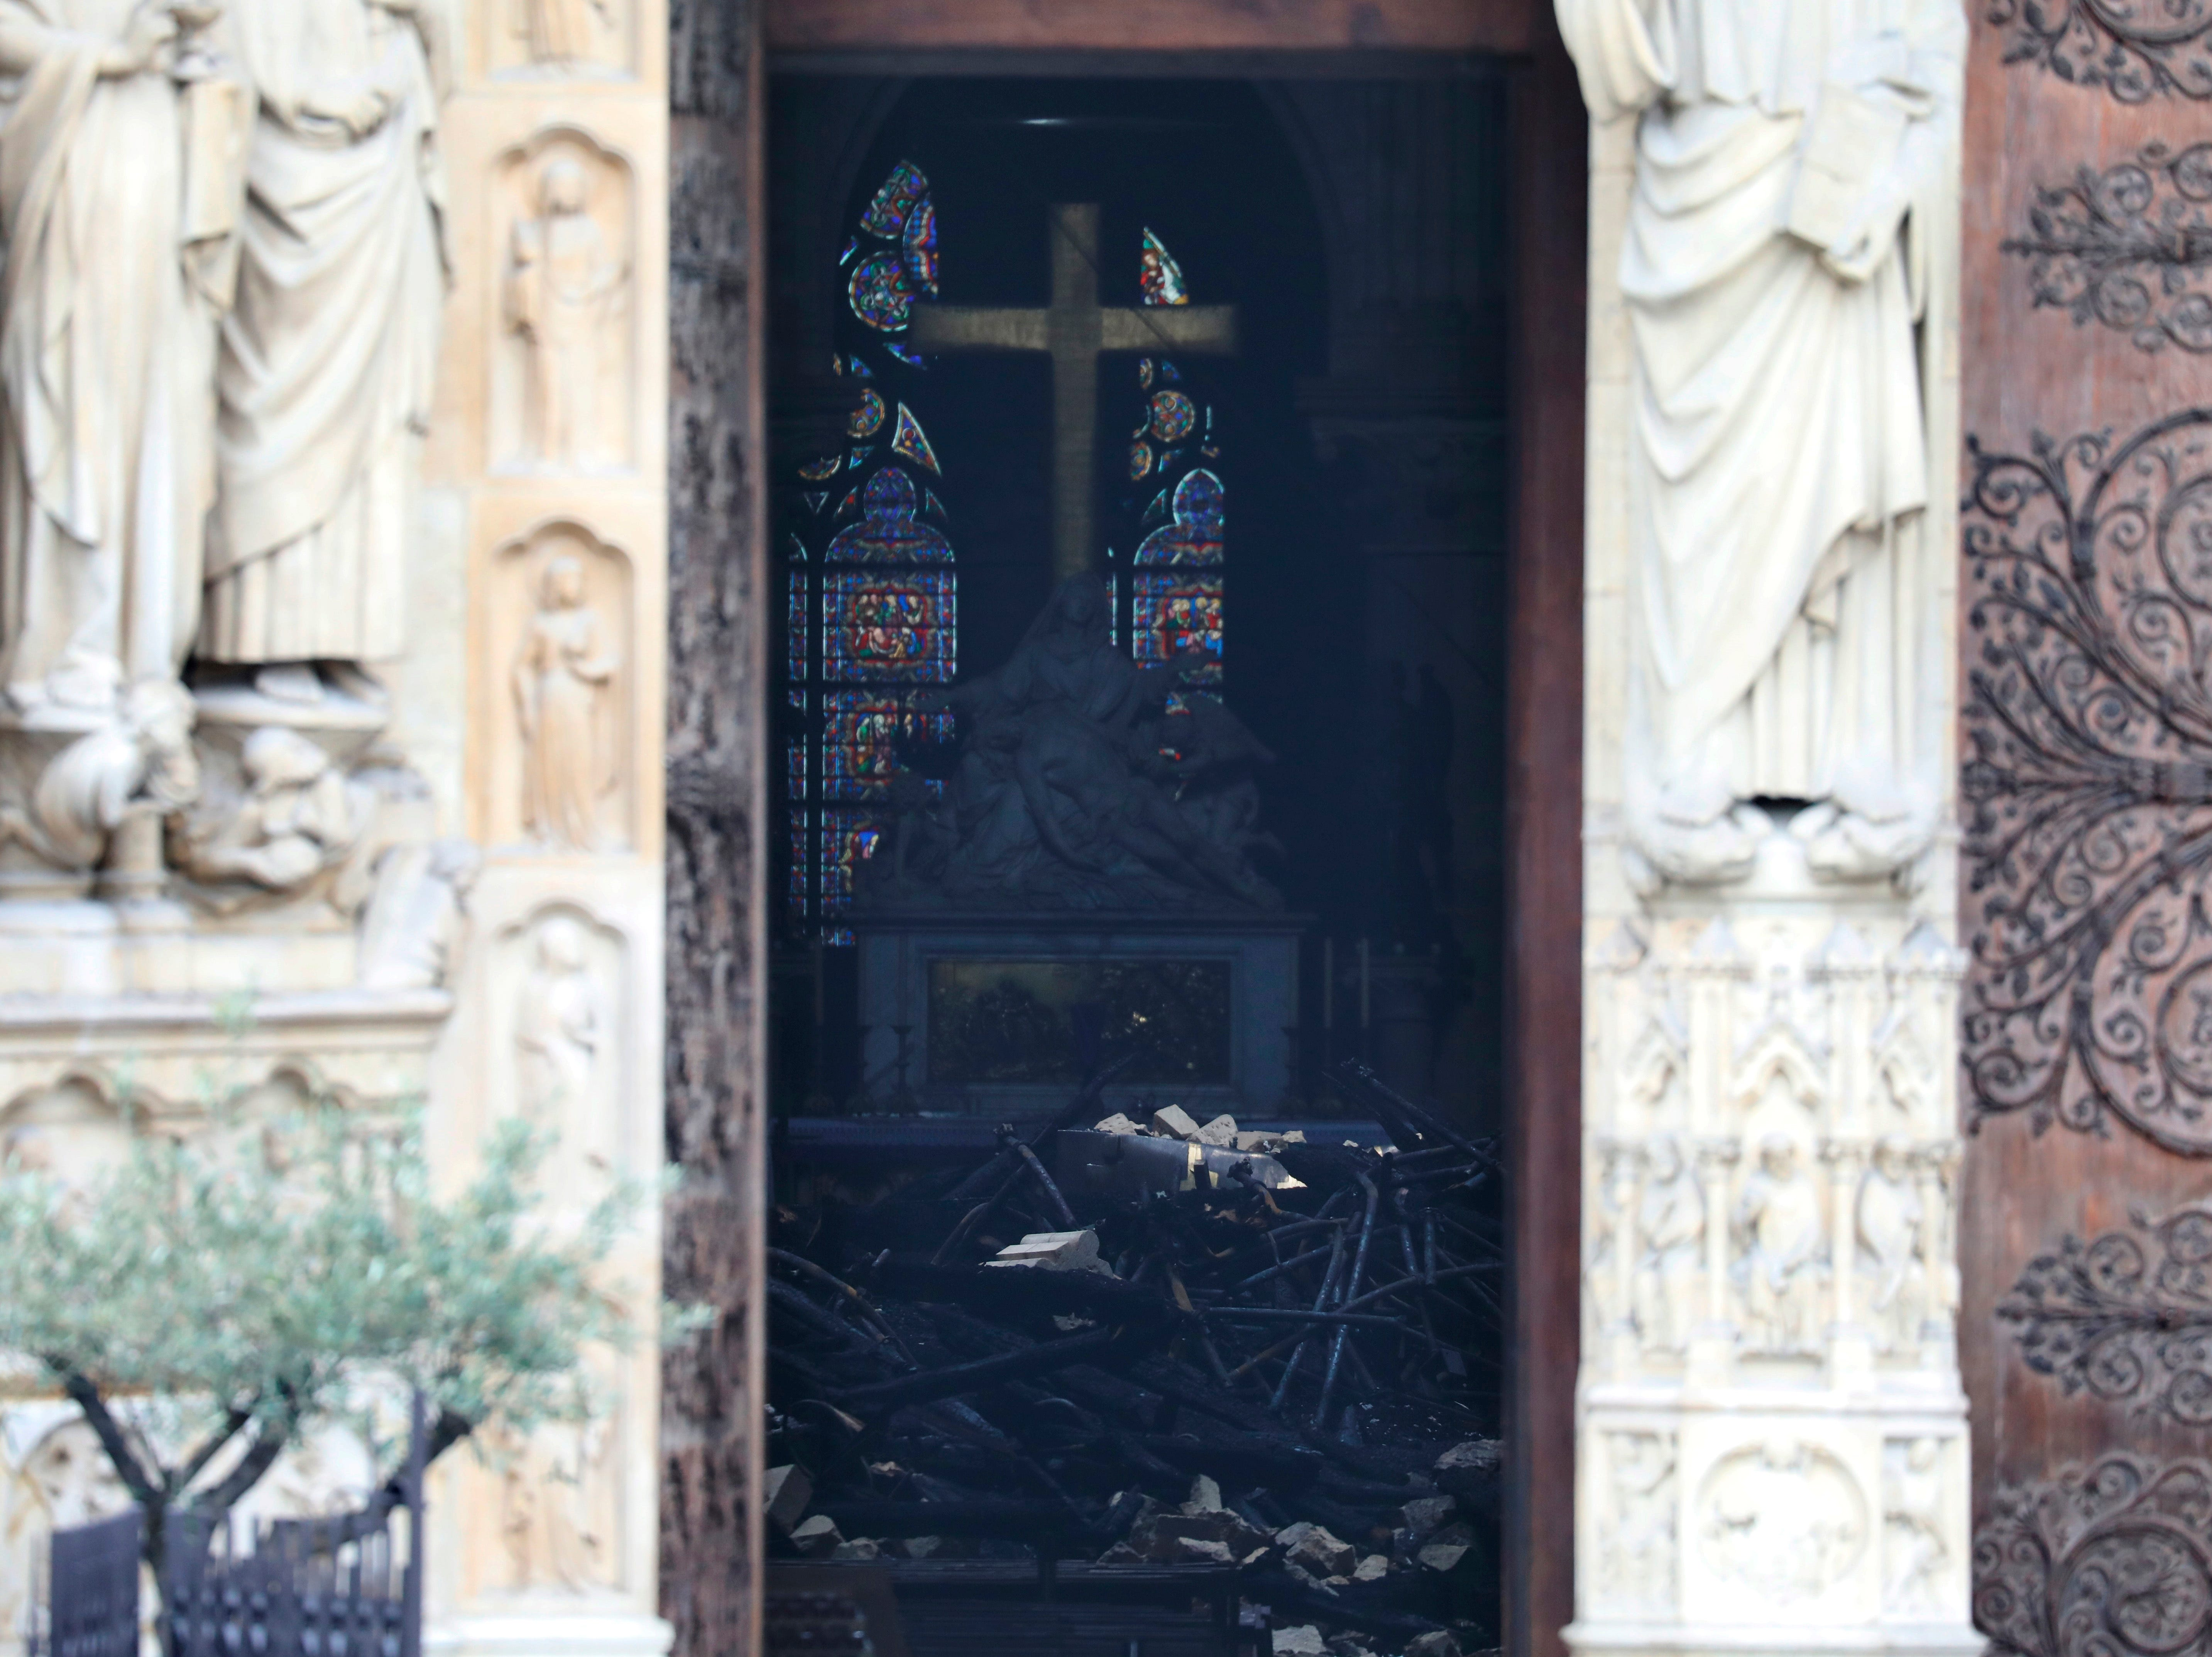 This picture shows charred debris inside Notre Dame cathedral Tuesday April 16, 2019. Firefighters declared success Tuesday morning in an over 12-hour battle to extinguish an inferno engulfing Paris' iconic Notre Dame cathedral that claimed its spire and roof, but spared its bell towers. (Ludovic Marin via AP)